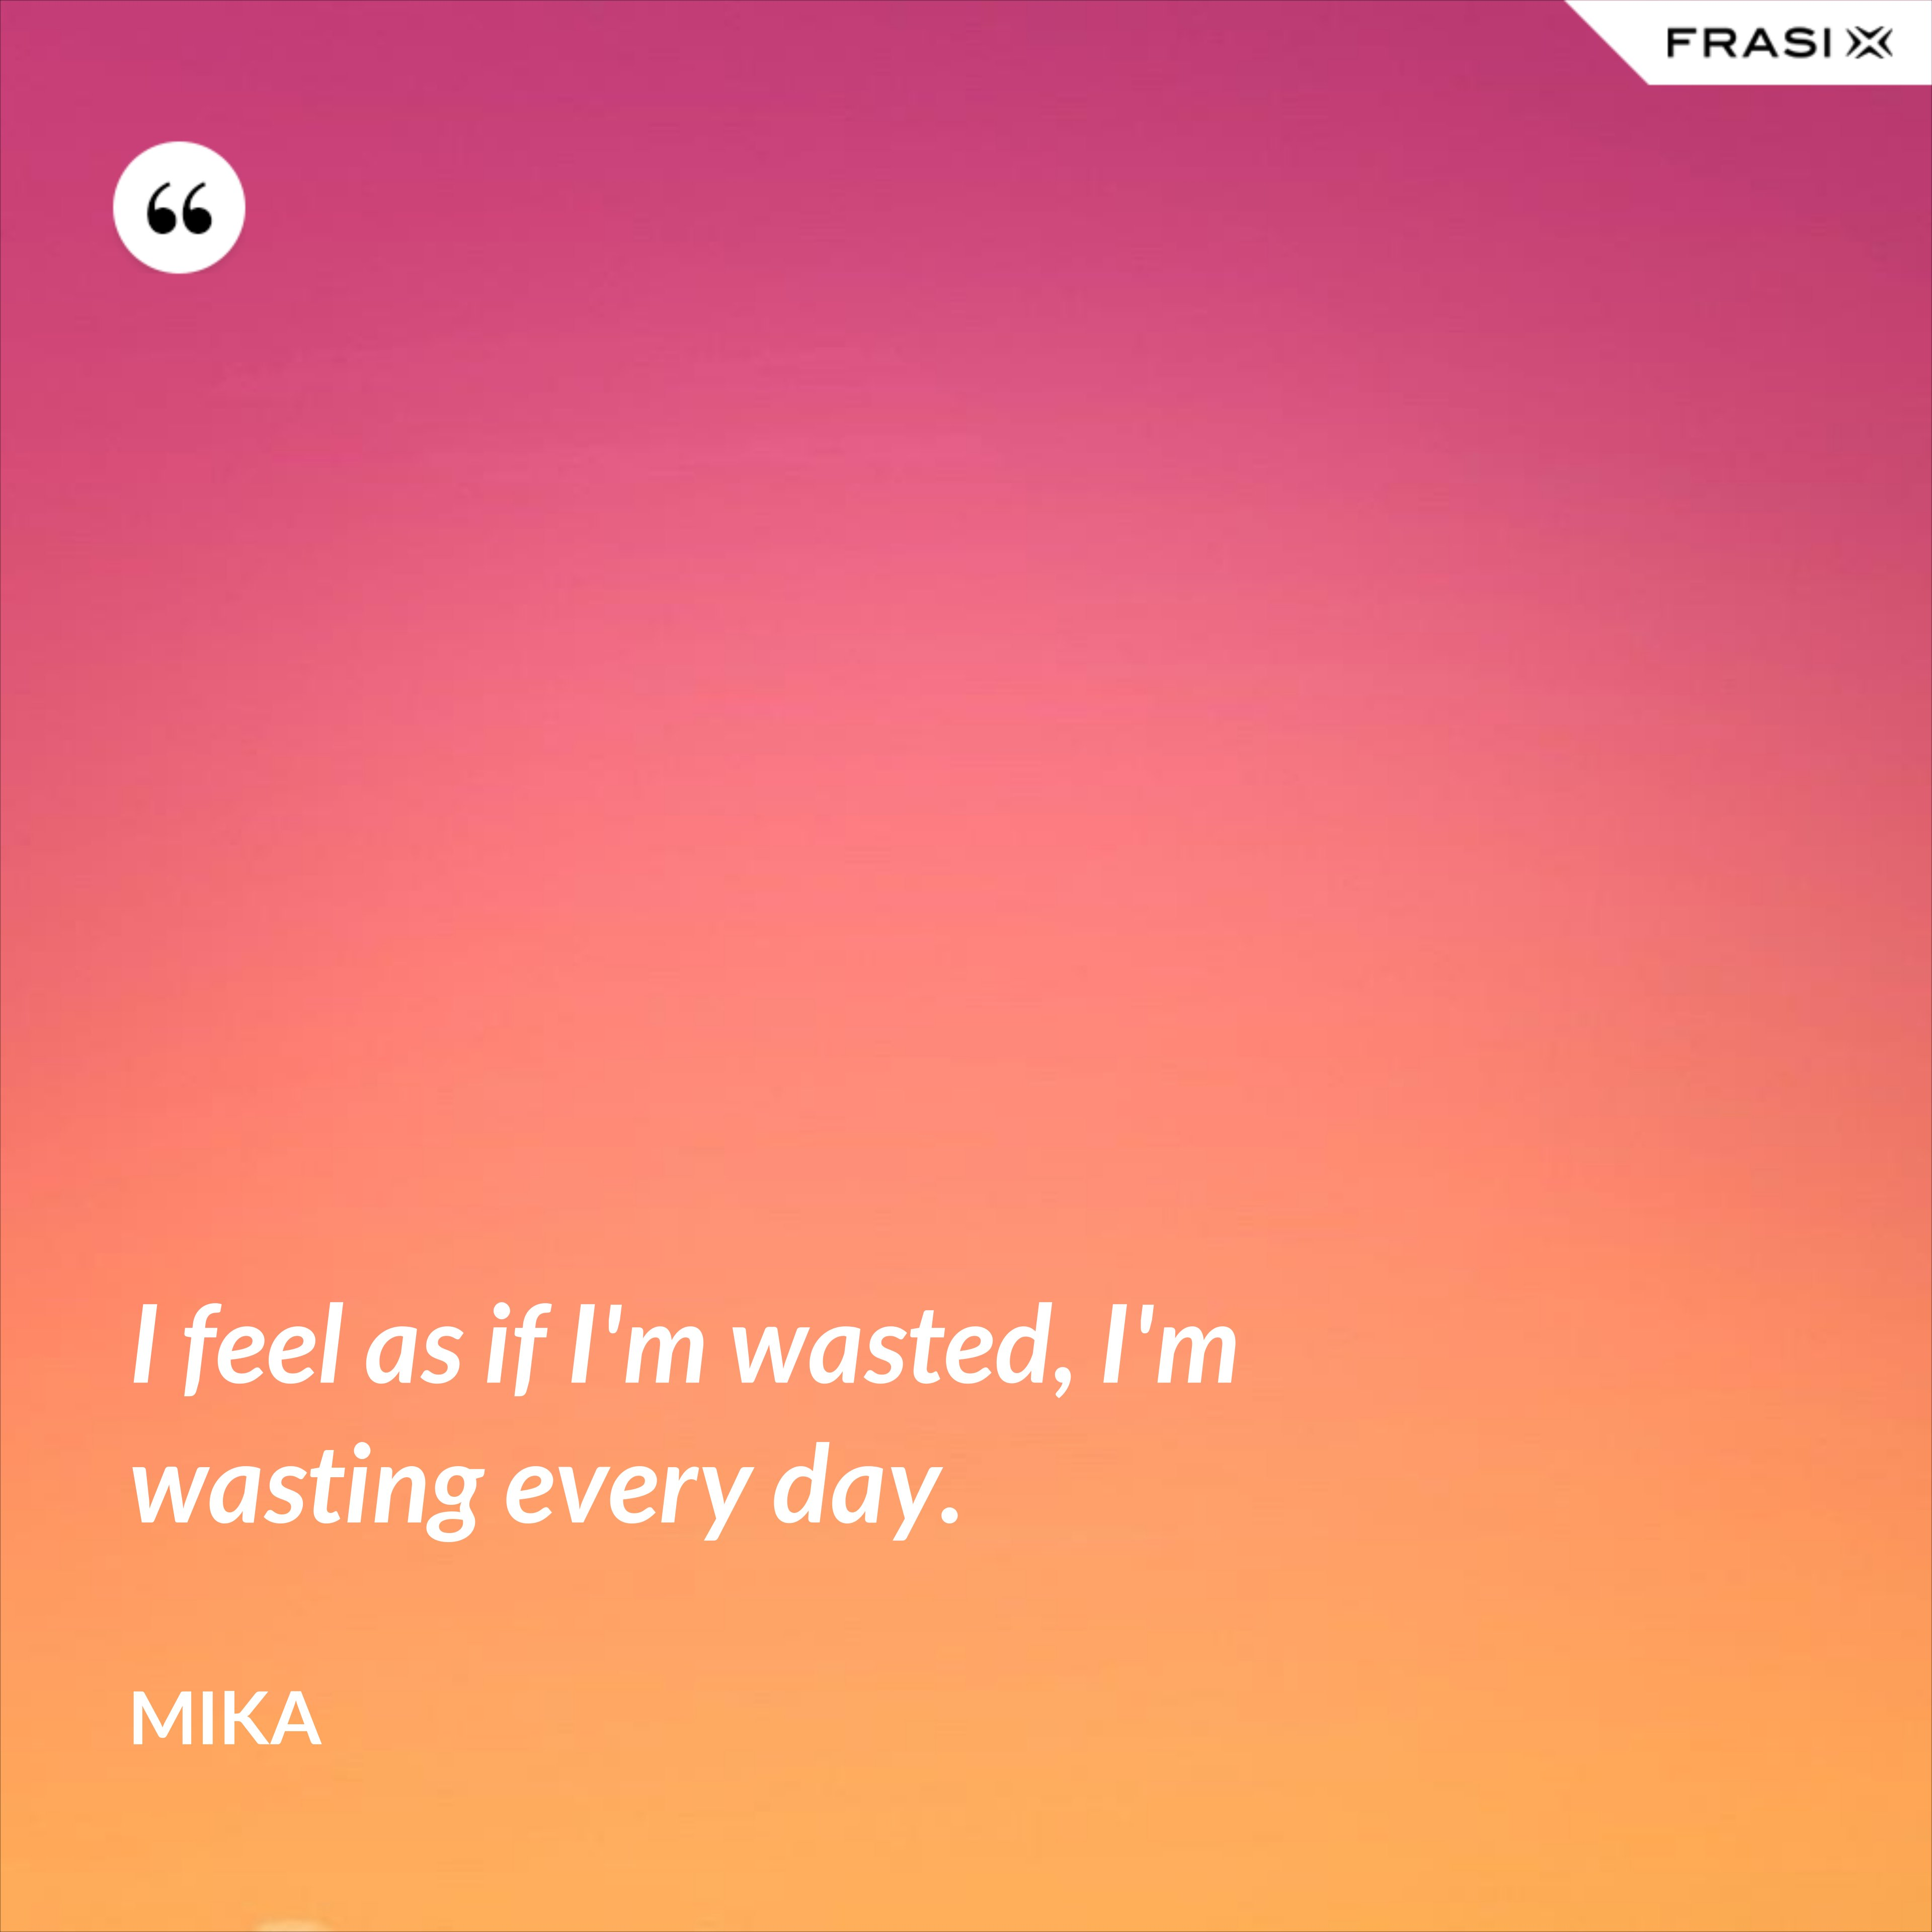 I feel as if I'm wasted, I'm wasting every day. - Mika